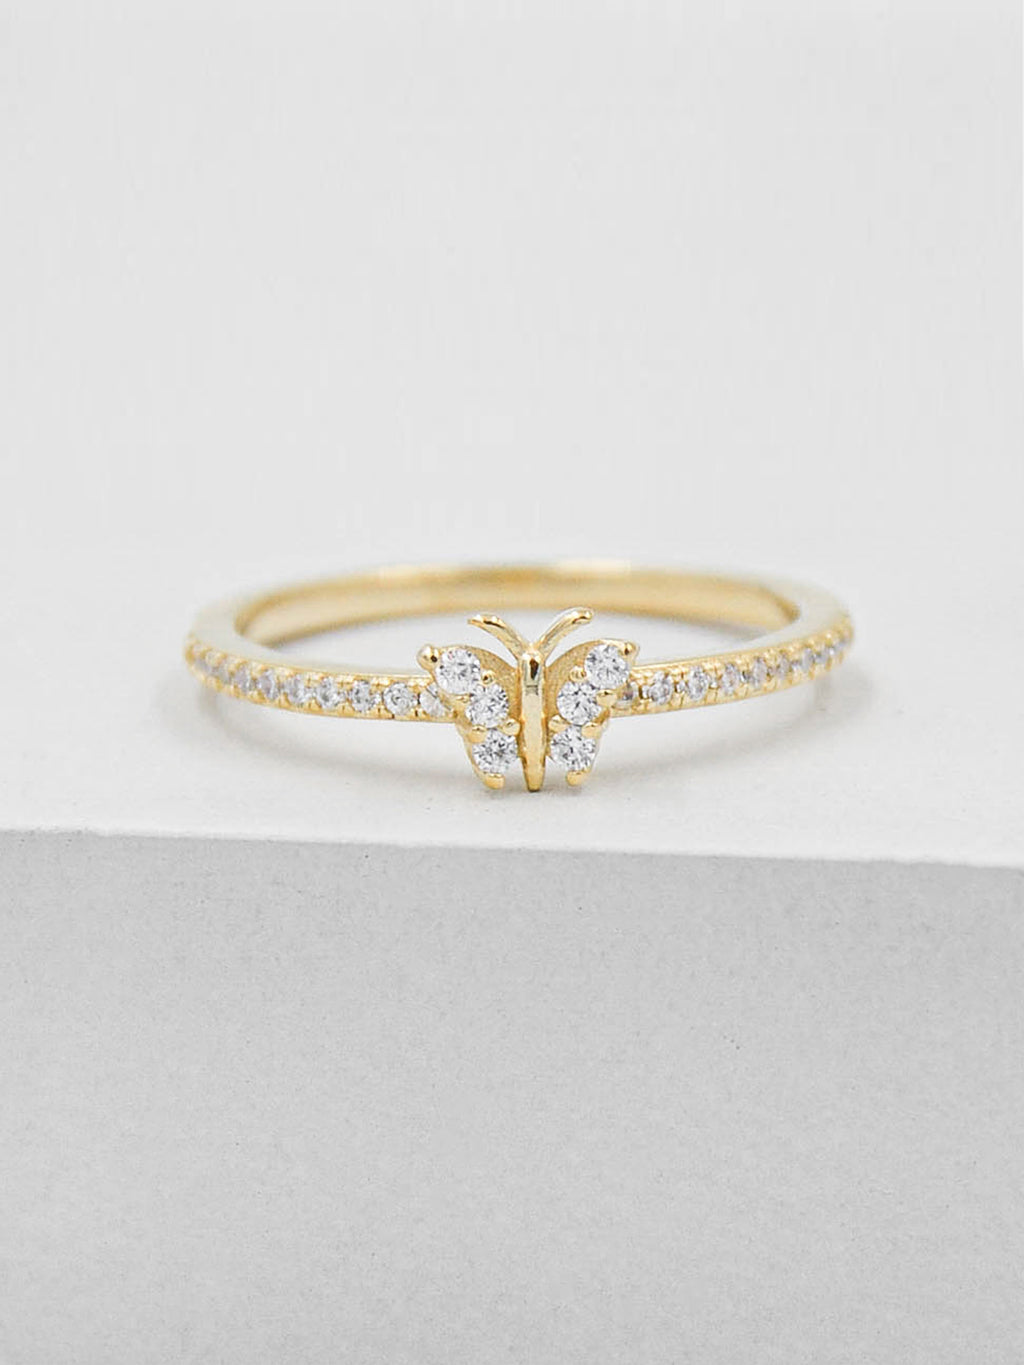 Gold Plated Butterfly Design Ring with White CZ by The Faint Hearted Jewelry